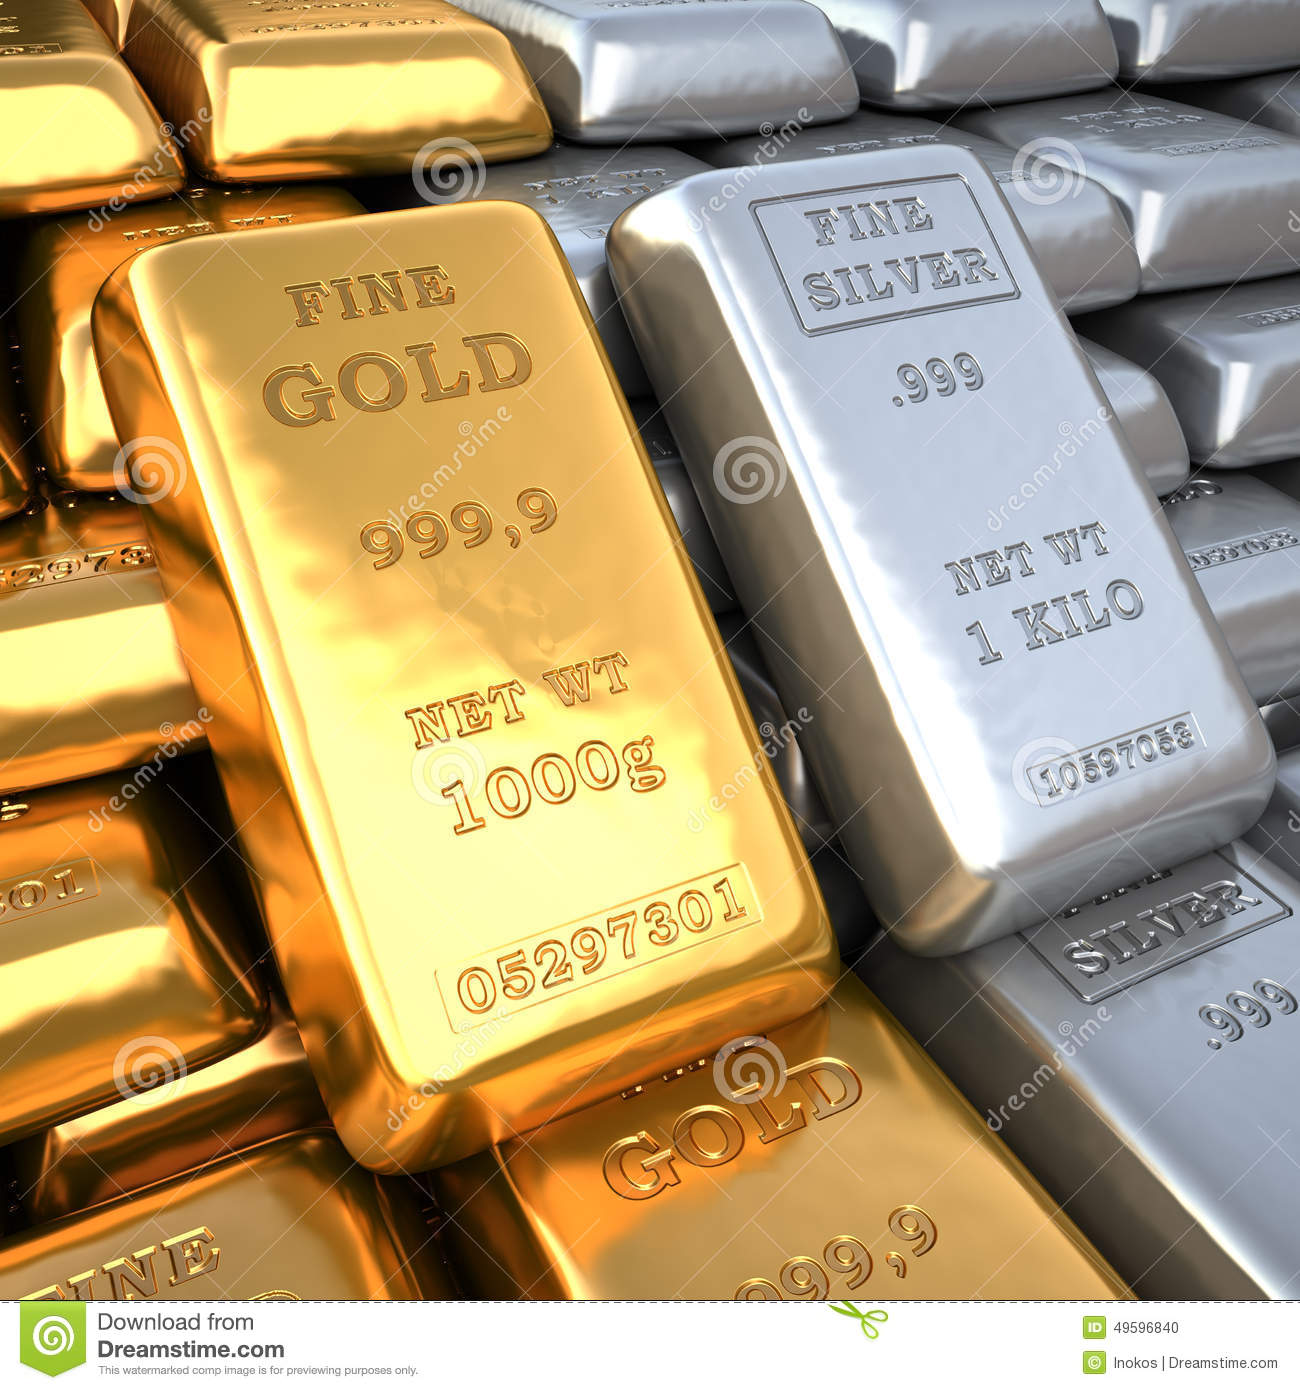 Silver Ingot And Gold Bullion Finance Illustration Stock